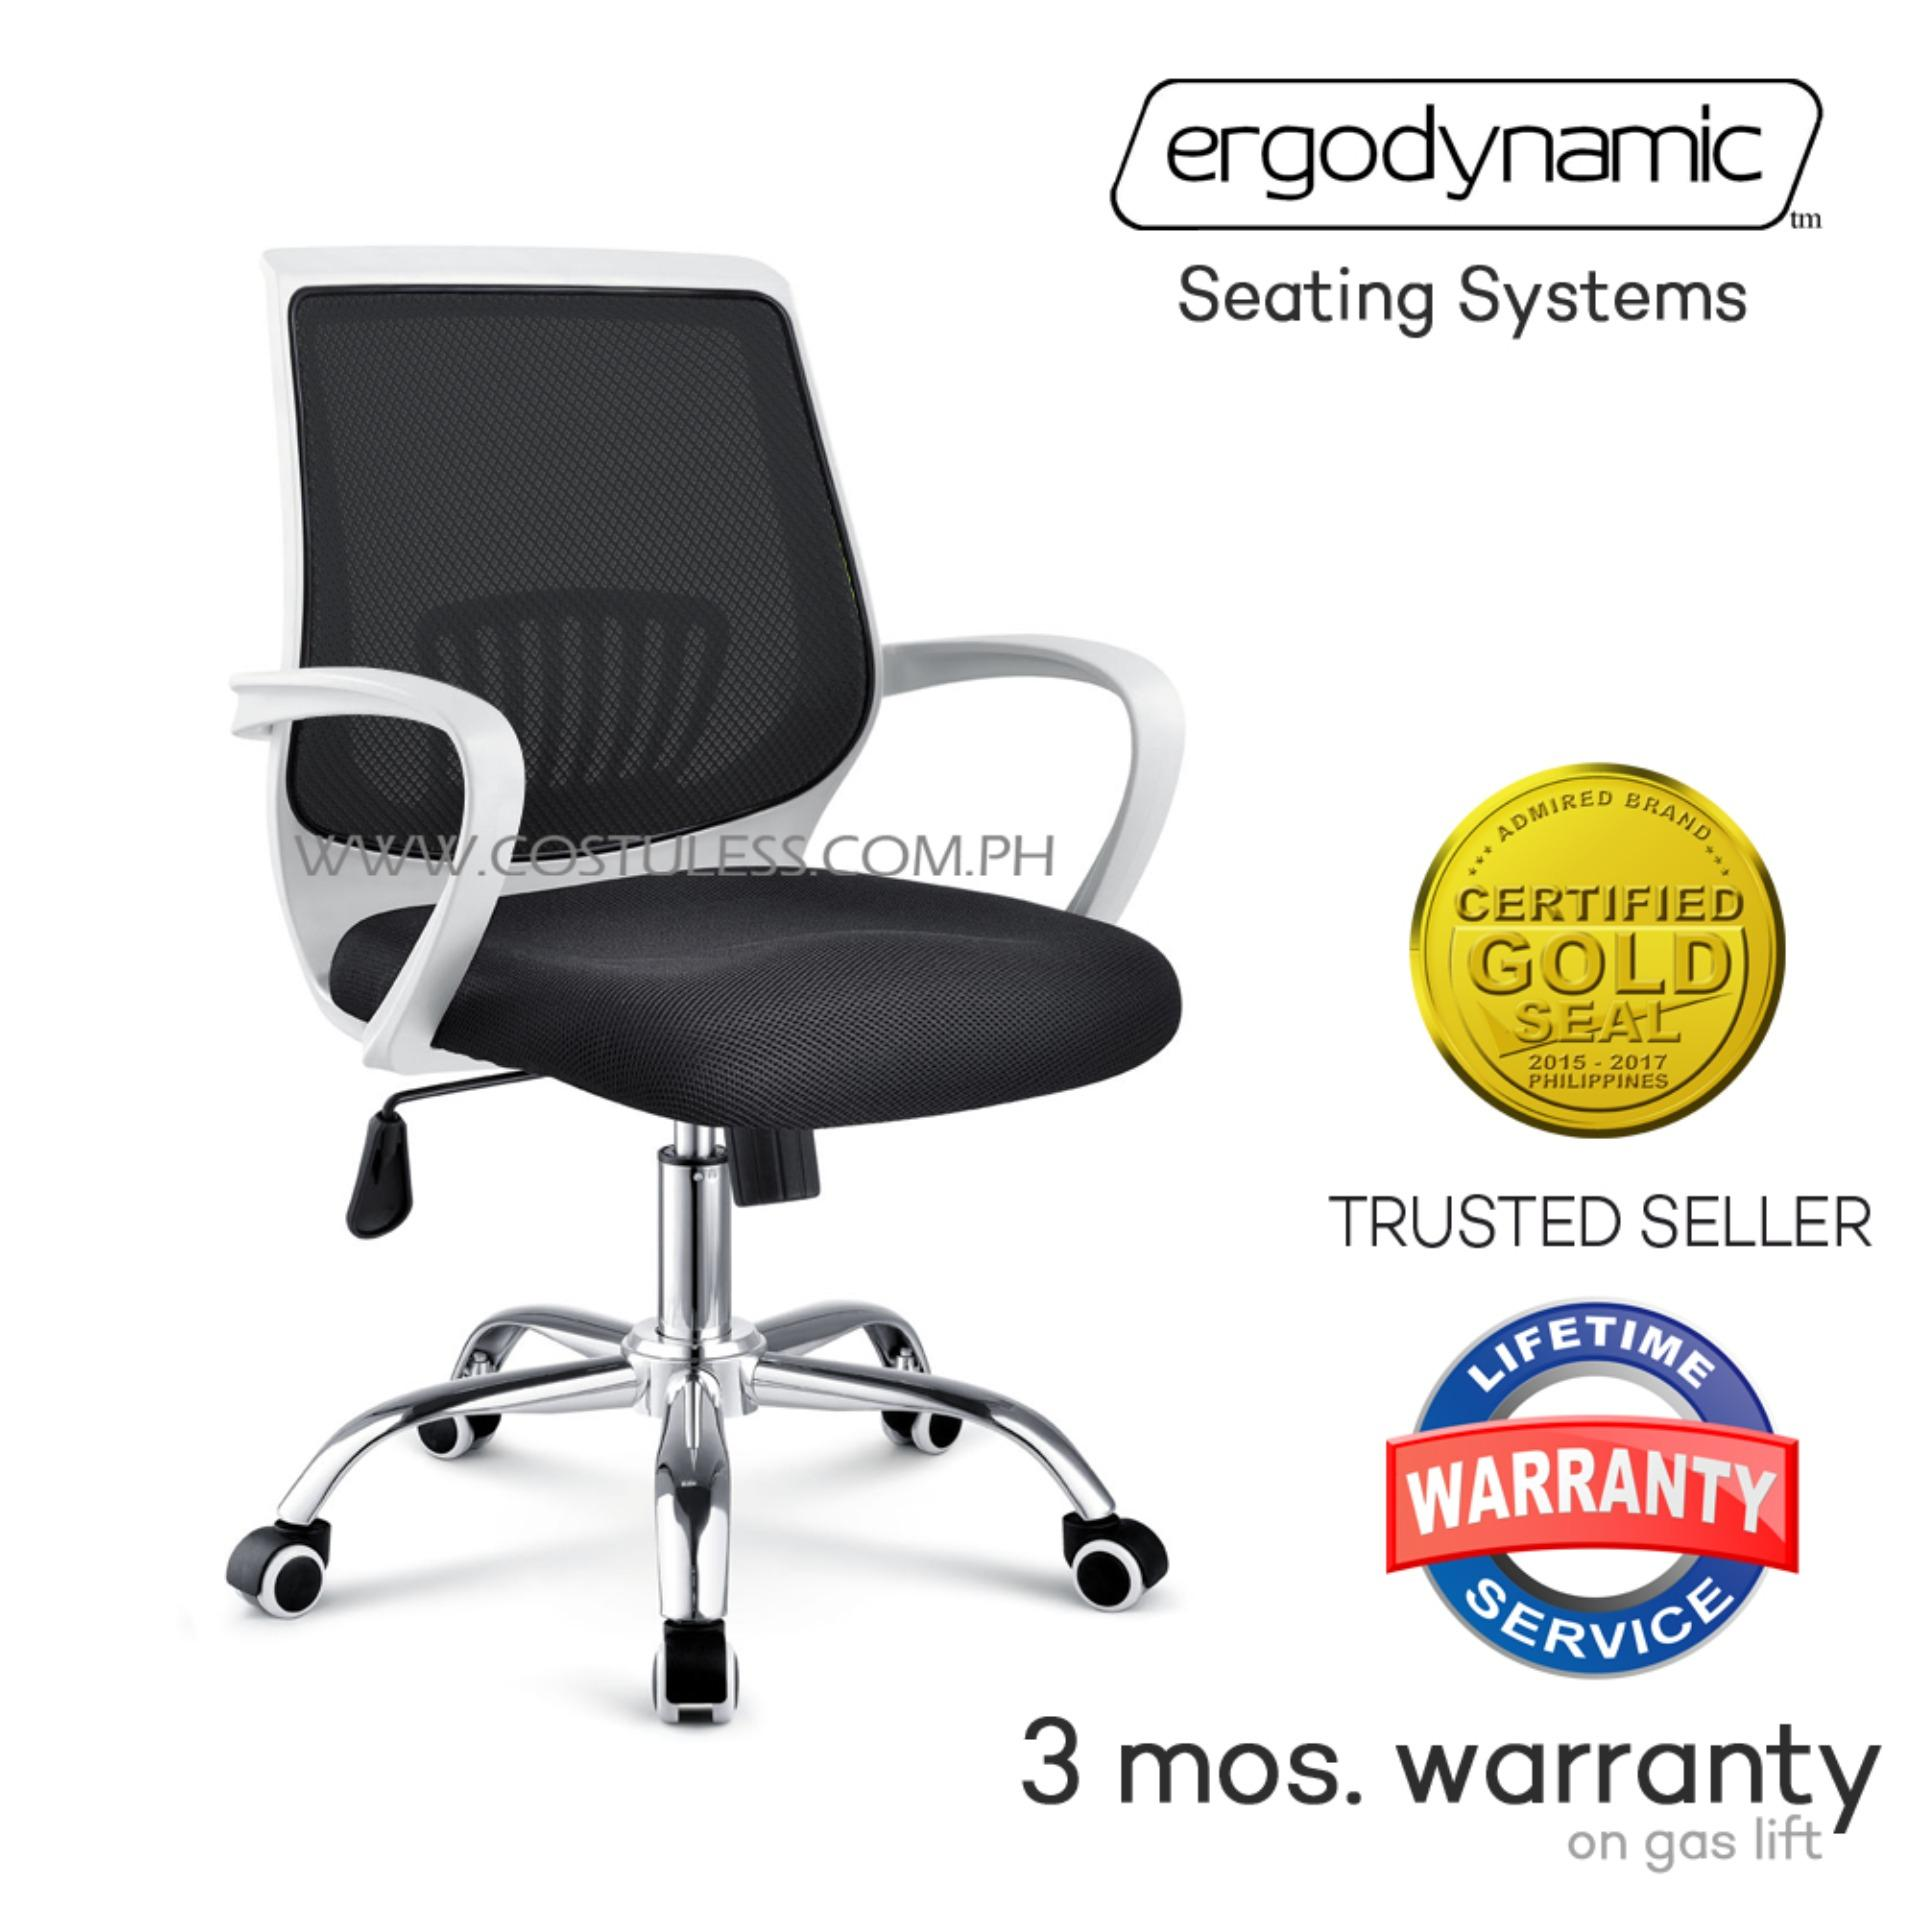 Erynamic Emc P18 Blk Mesh Chair 360 Swivel Function Office Mid Back Staff